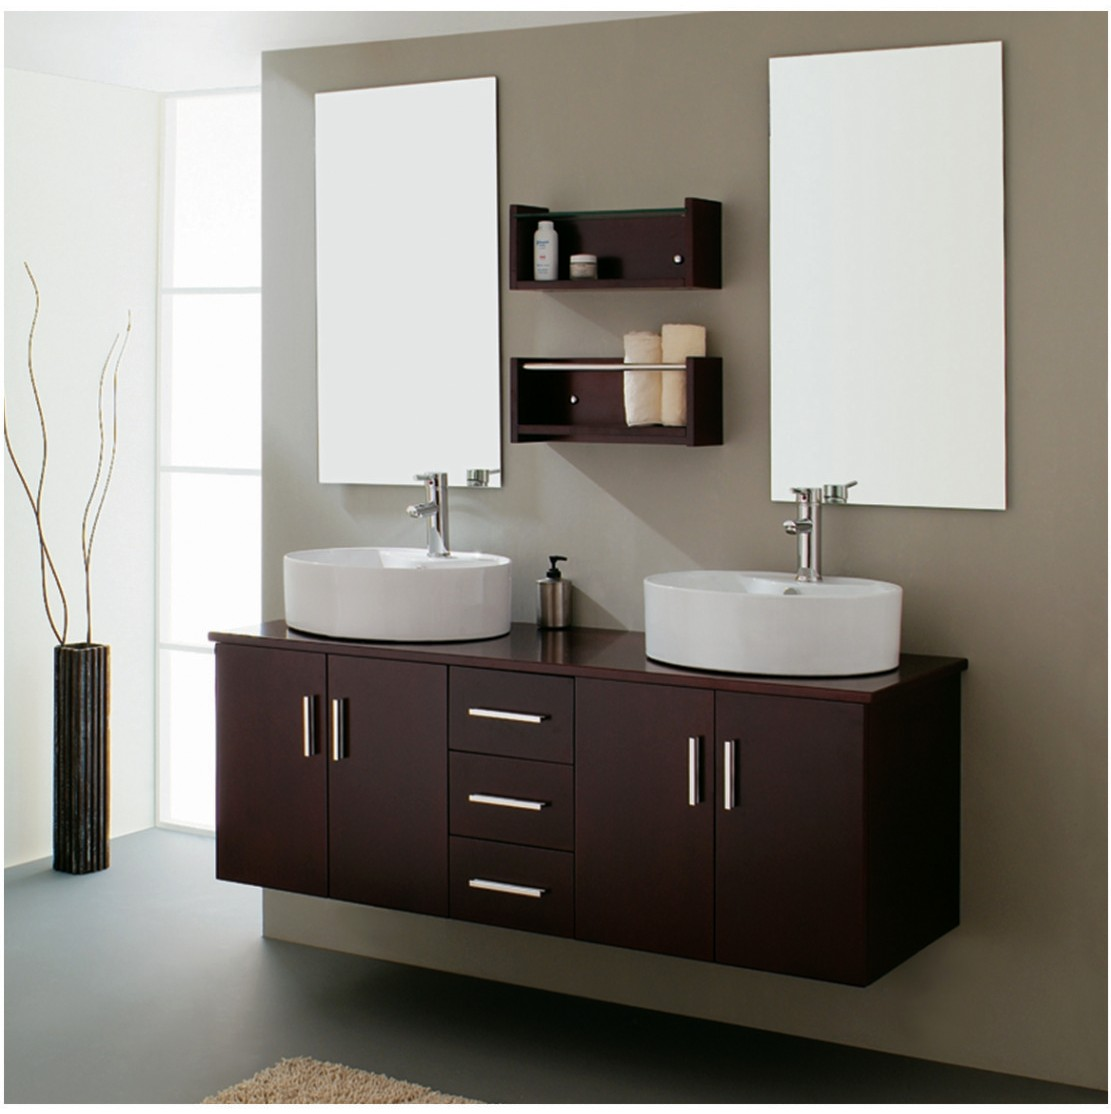 Modern bathroom double sink home decorating ideas for Modern bathroom designs